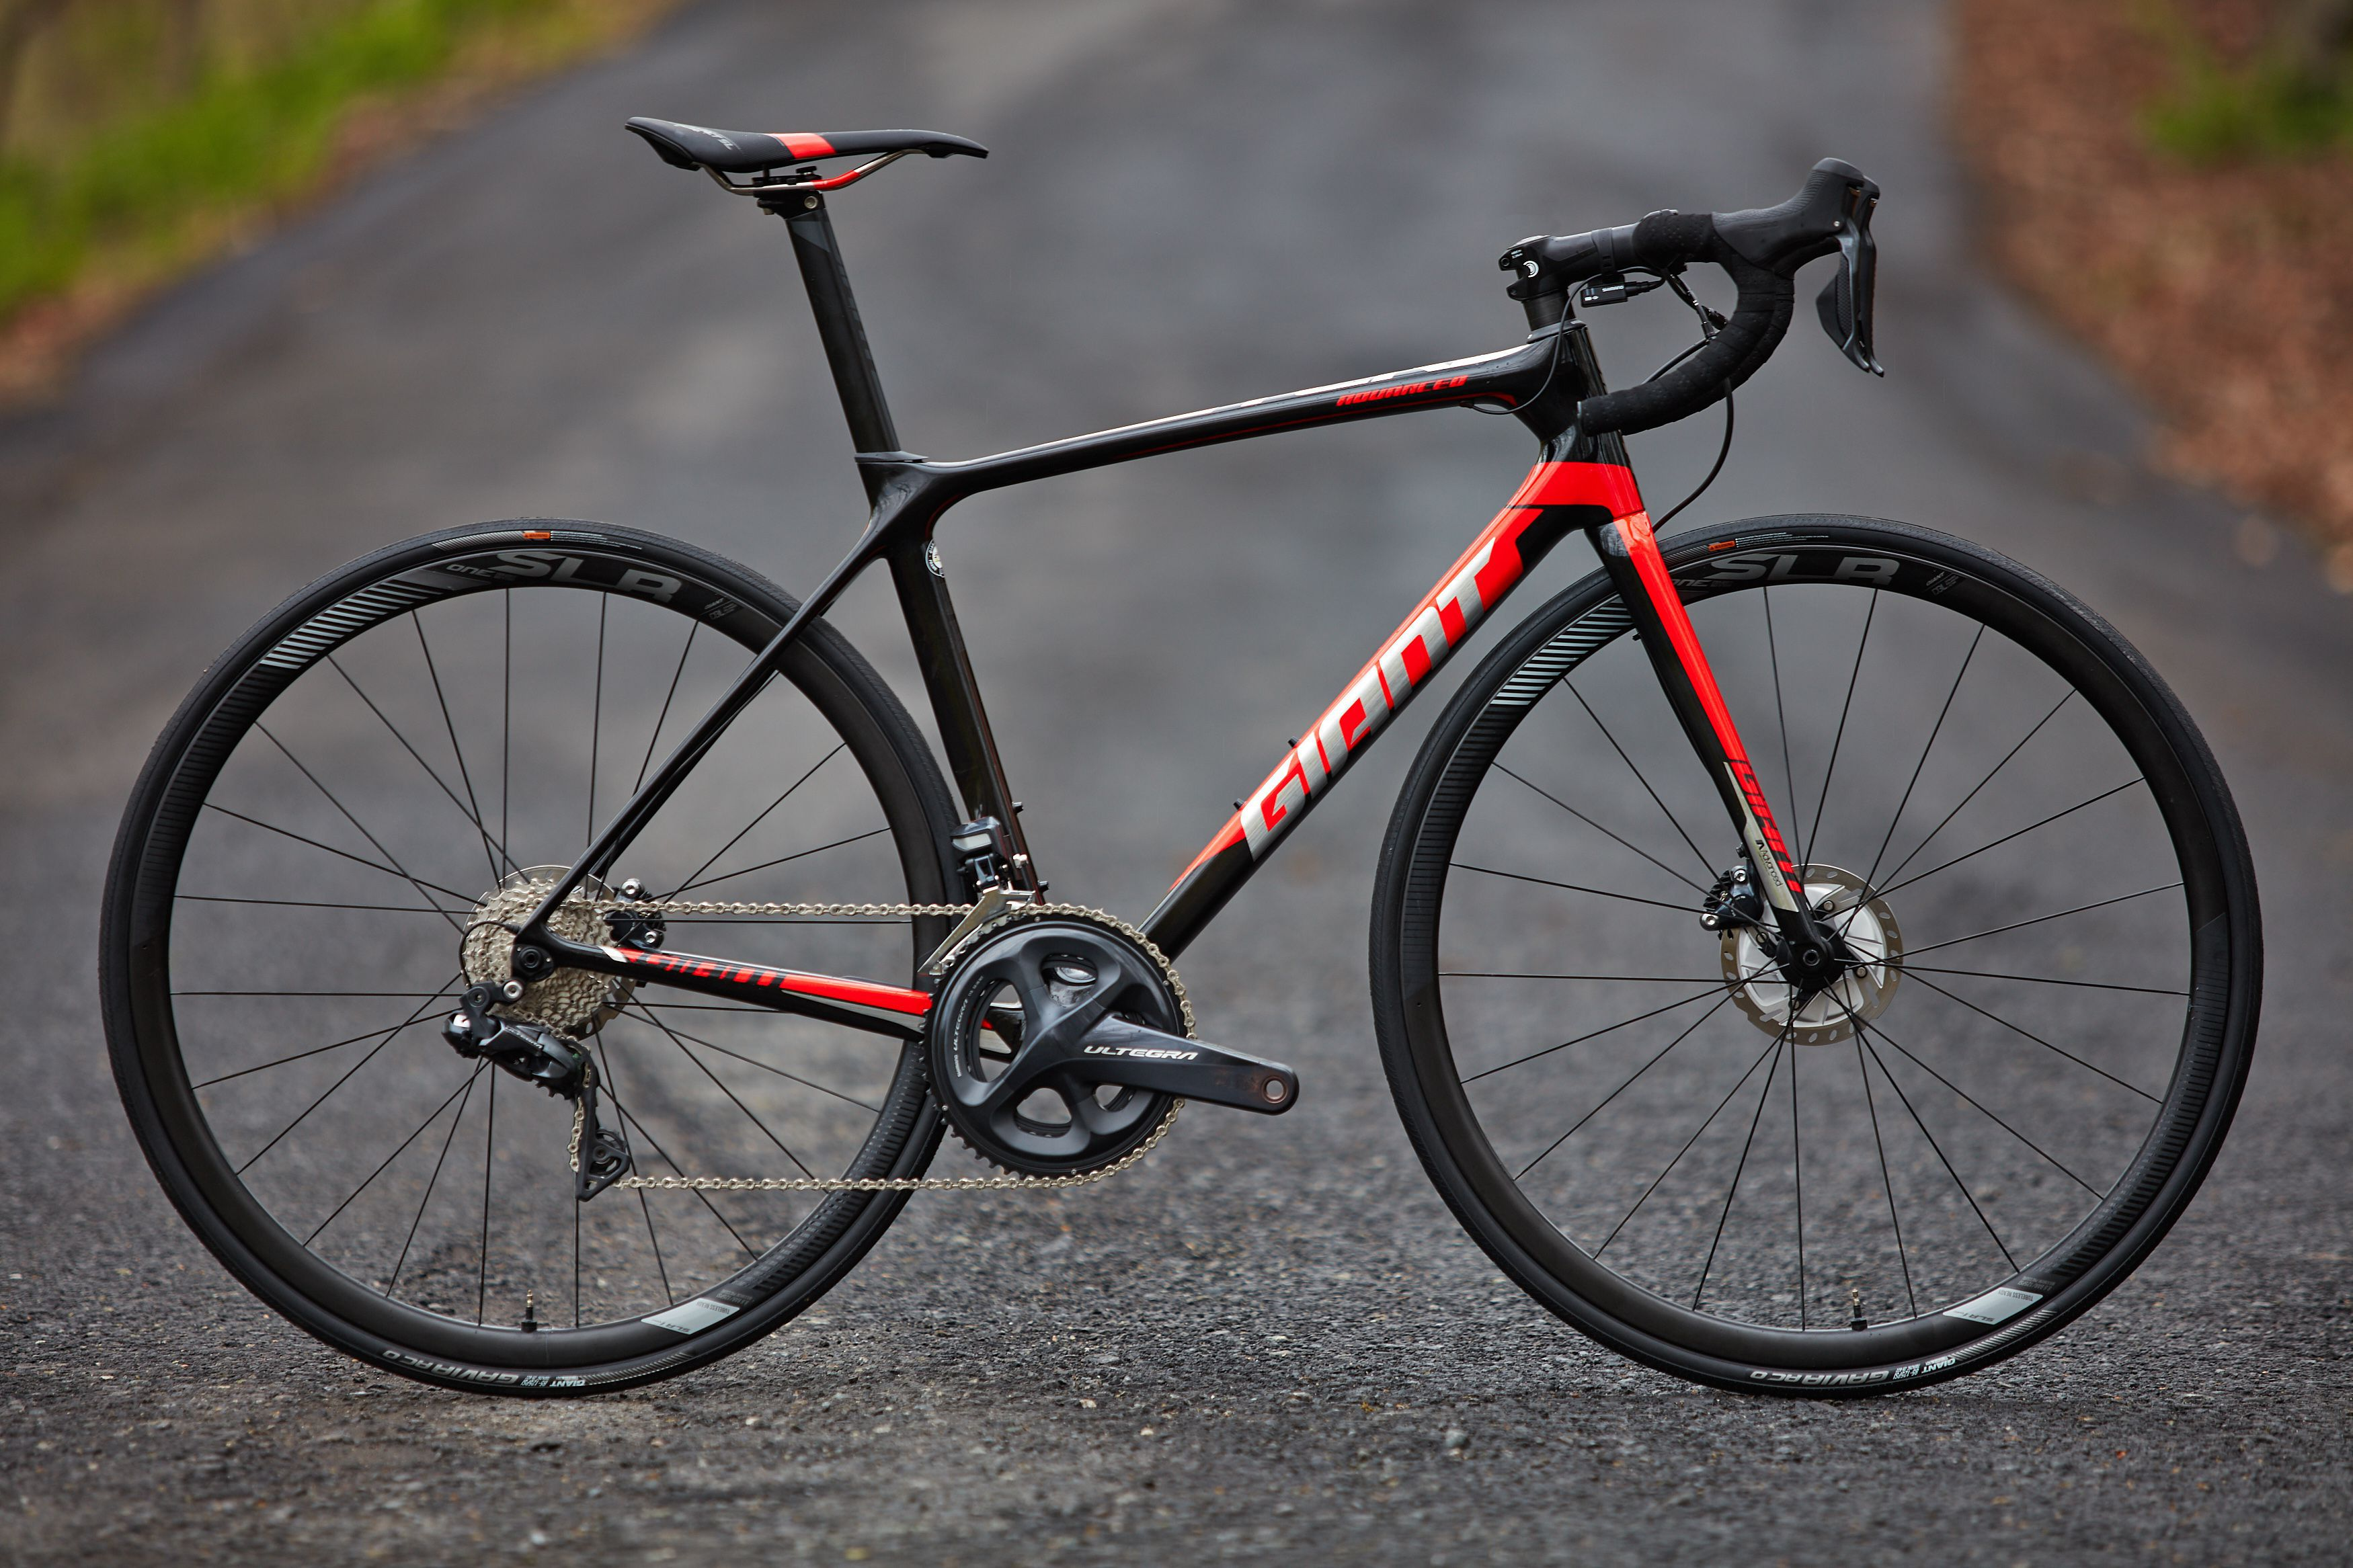 The Fierce Giant TCR Advanced Pro 0 Disc Is Ready to Rumble